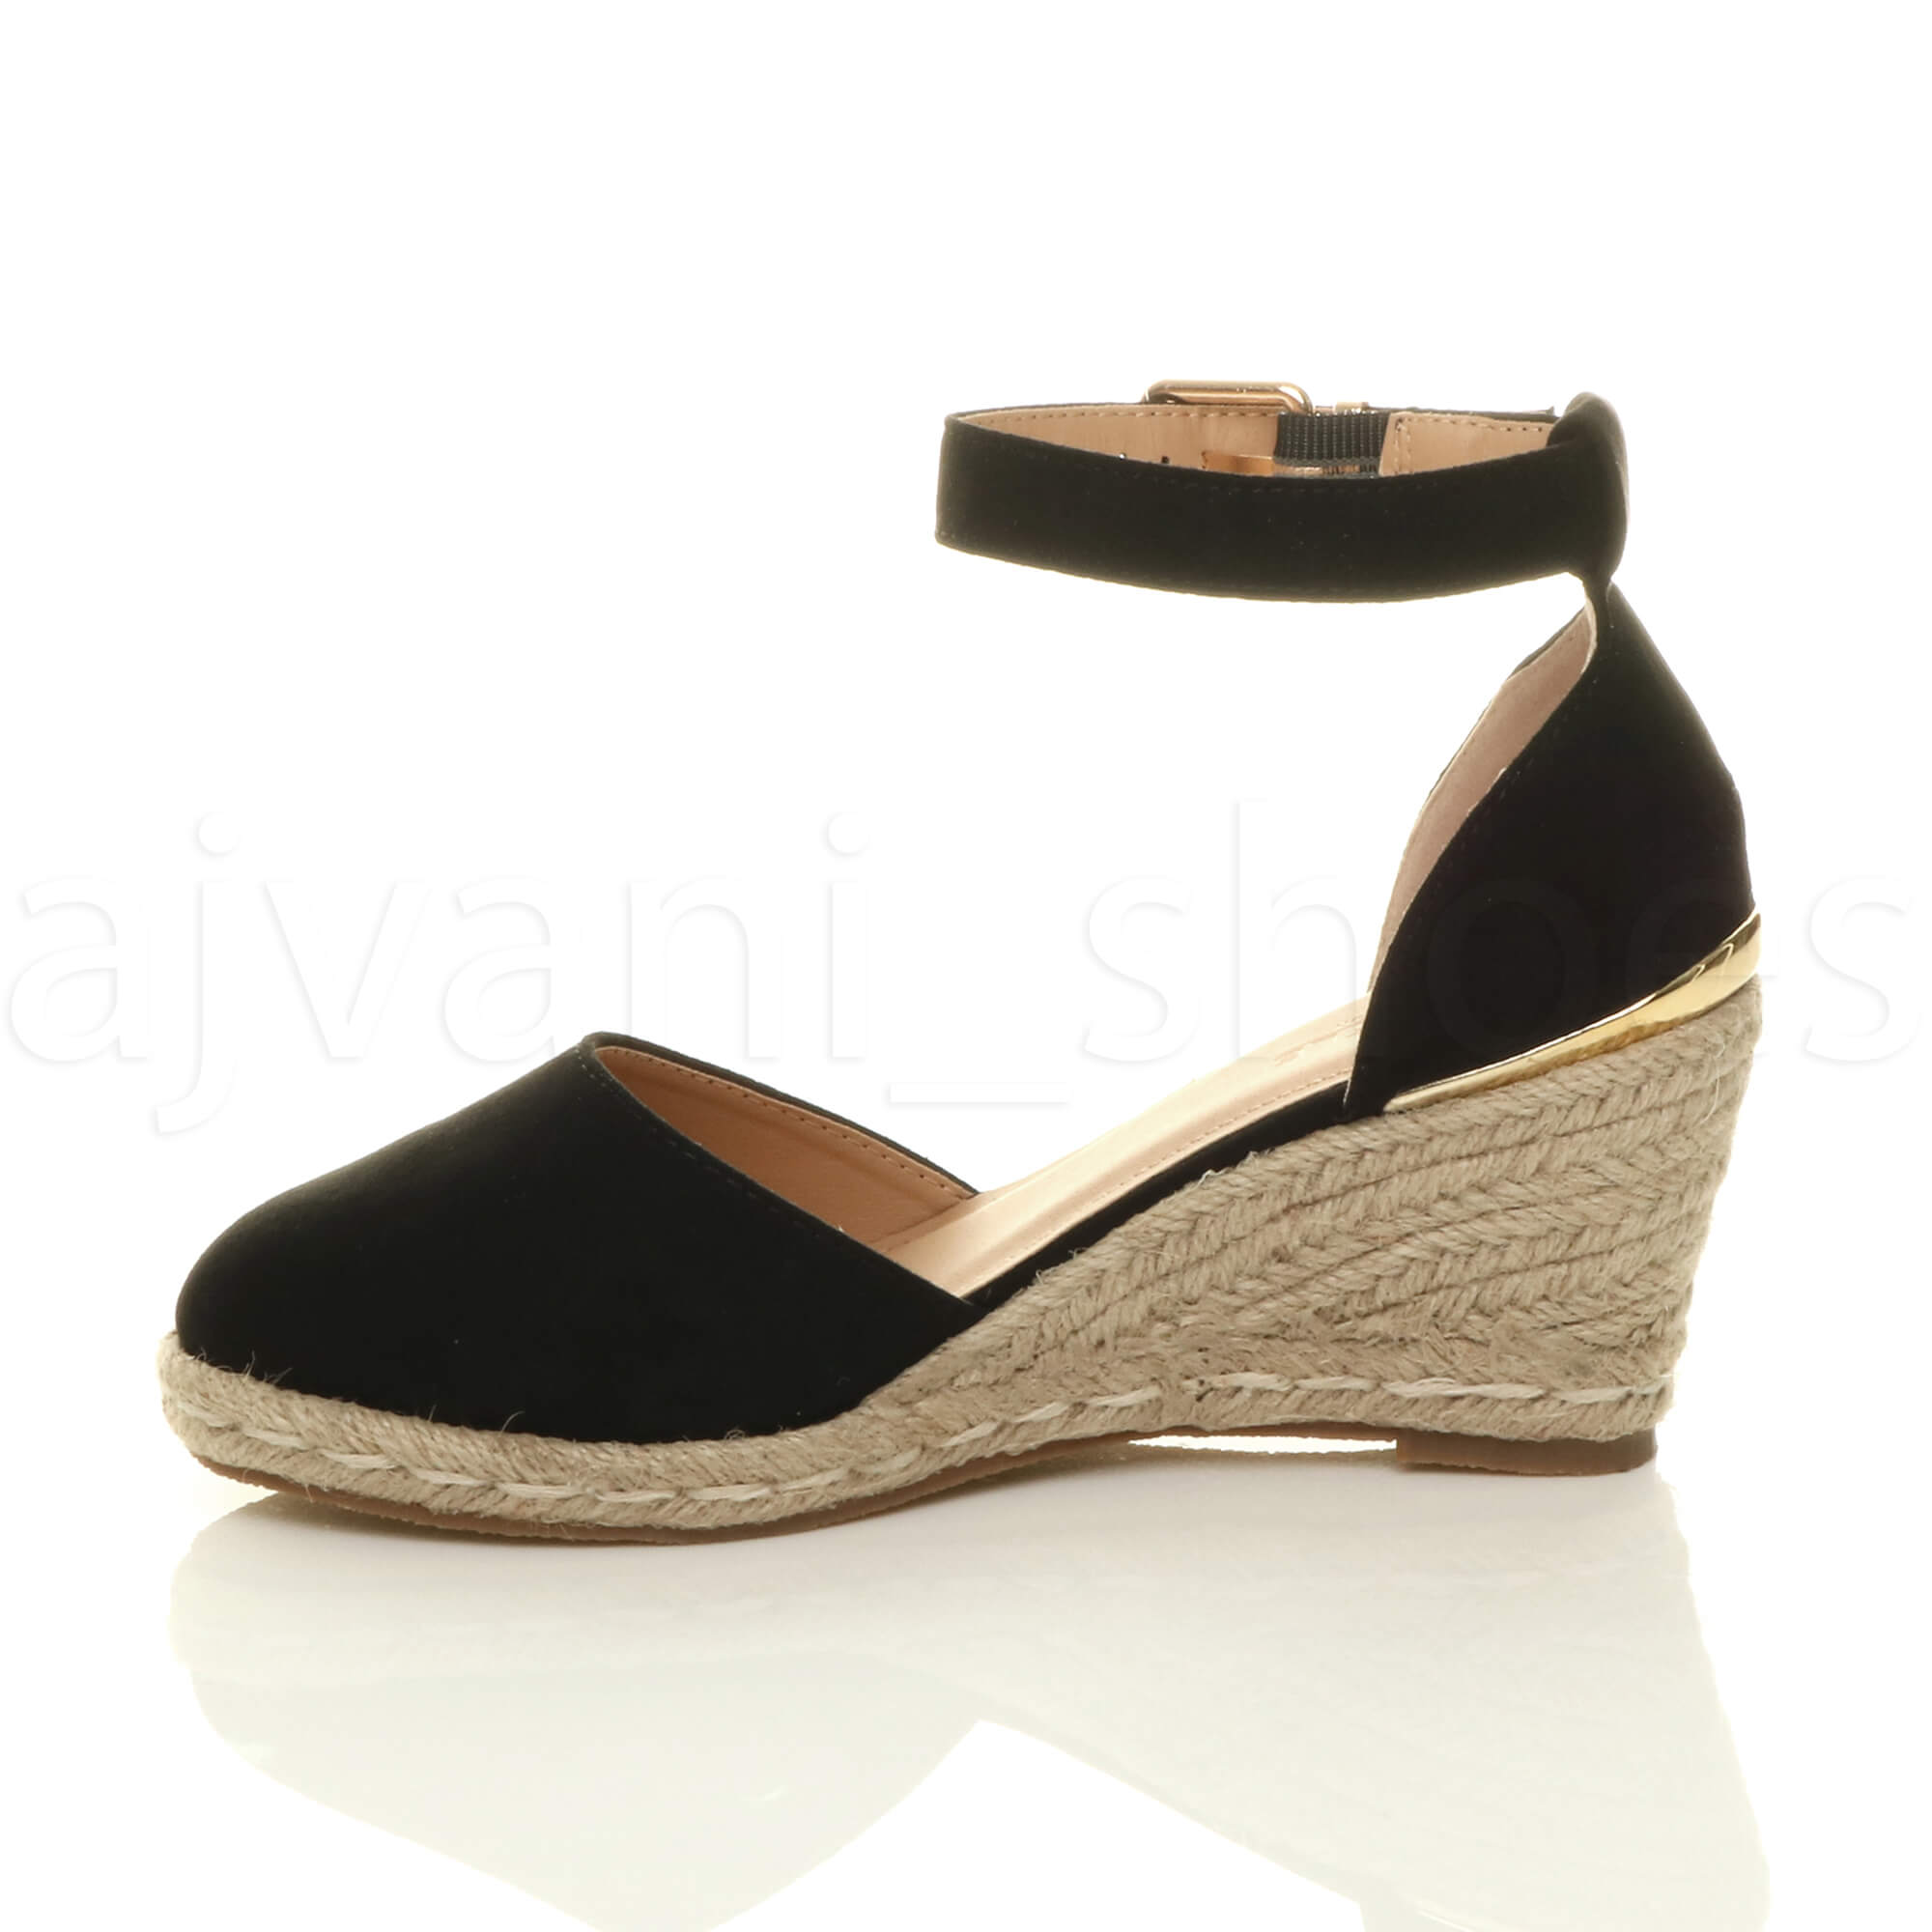 WOMENS-LADIES-MID-WEDGE-HEEL-BUCKLE-UP-ANKLE-STRAP-ESPADRILLE-SANDALS-SIZE